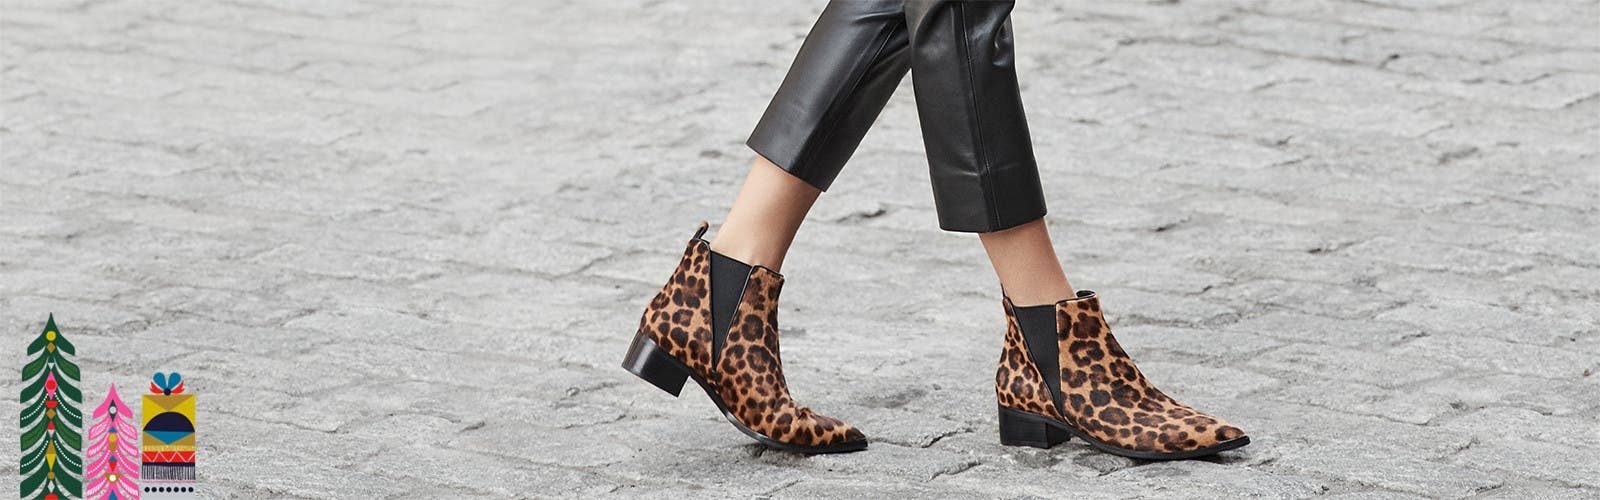 Put your best foot forward in women's boots and booties.